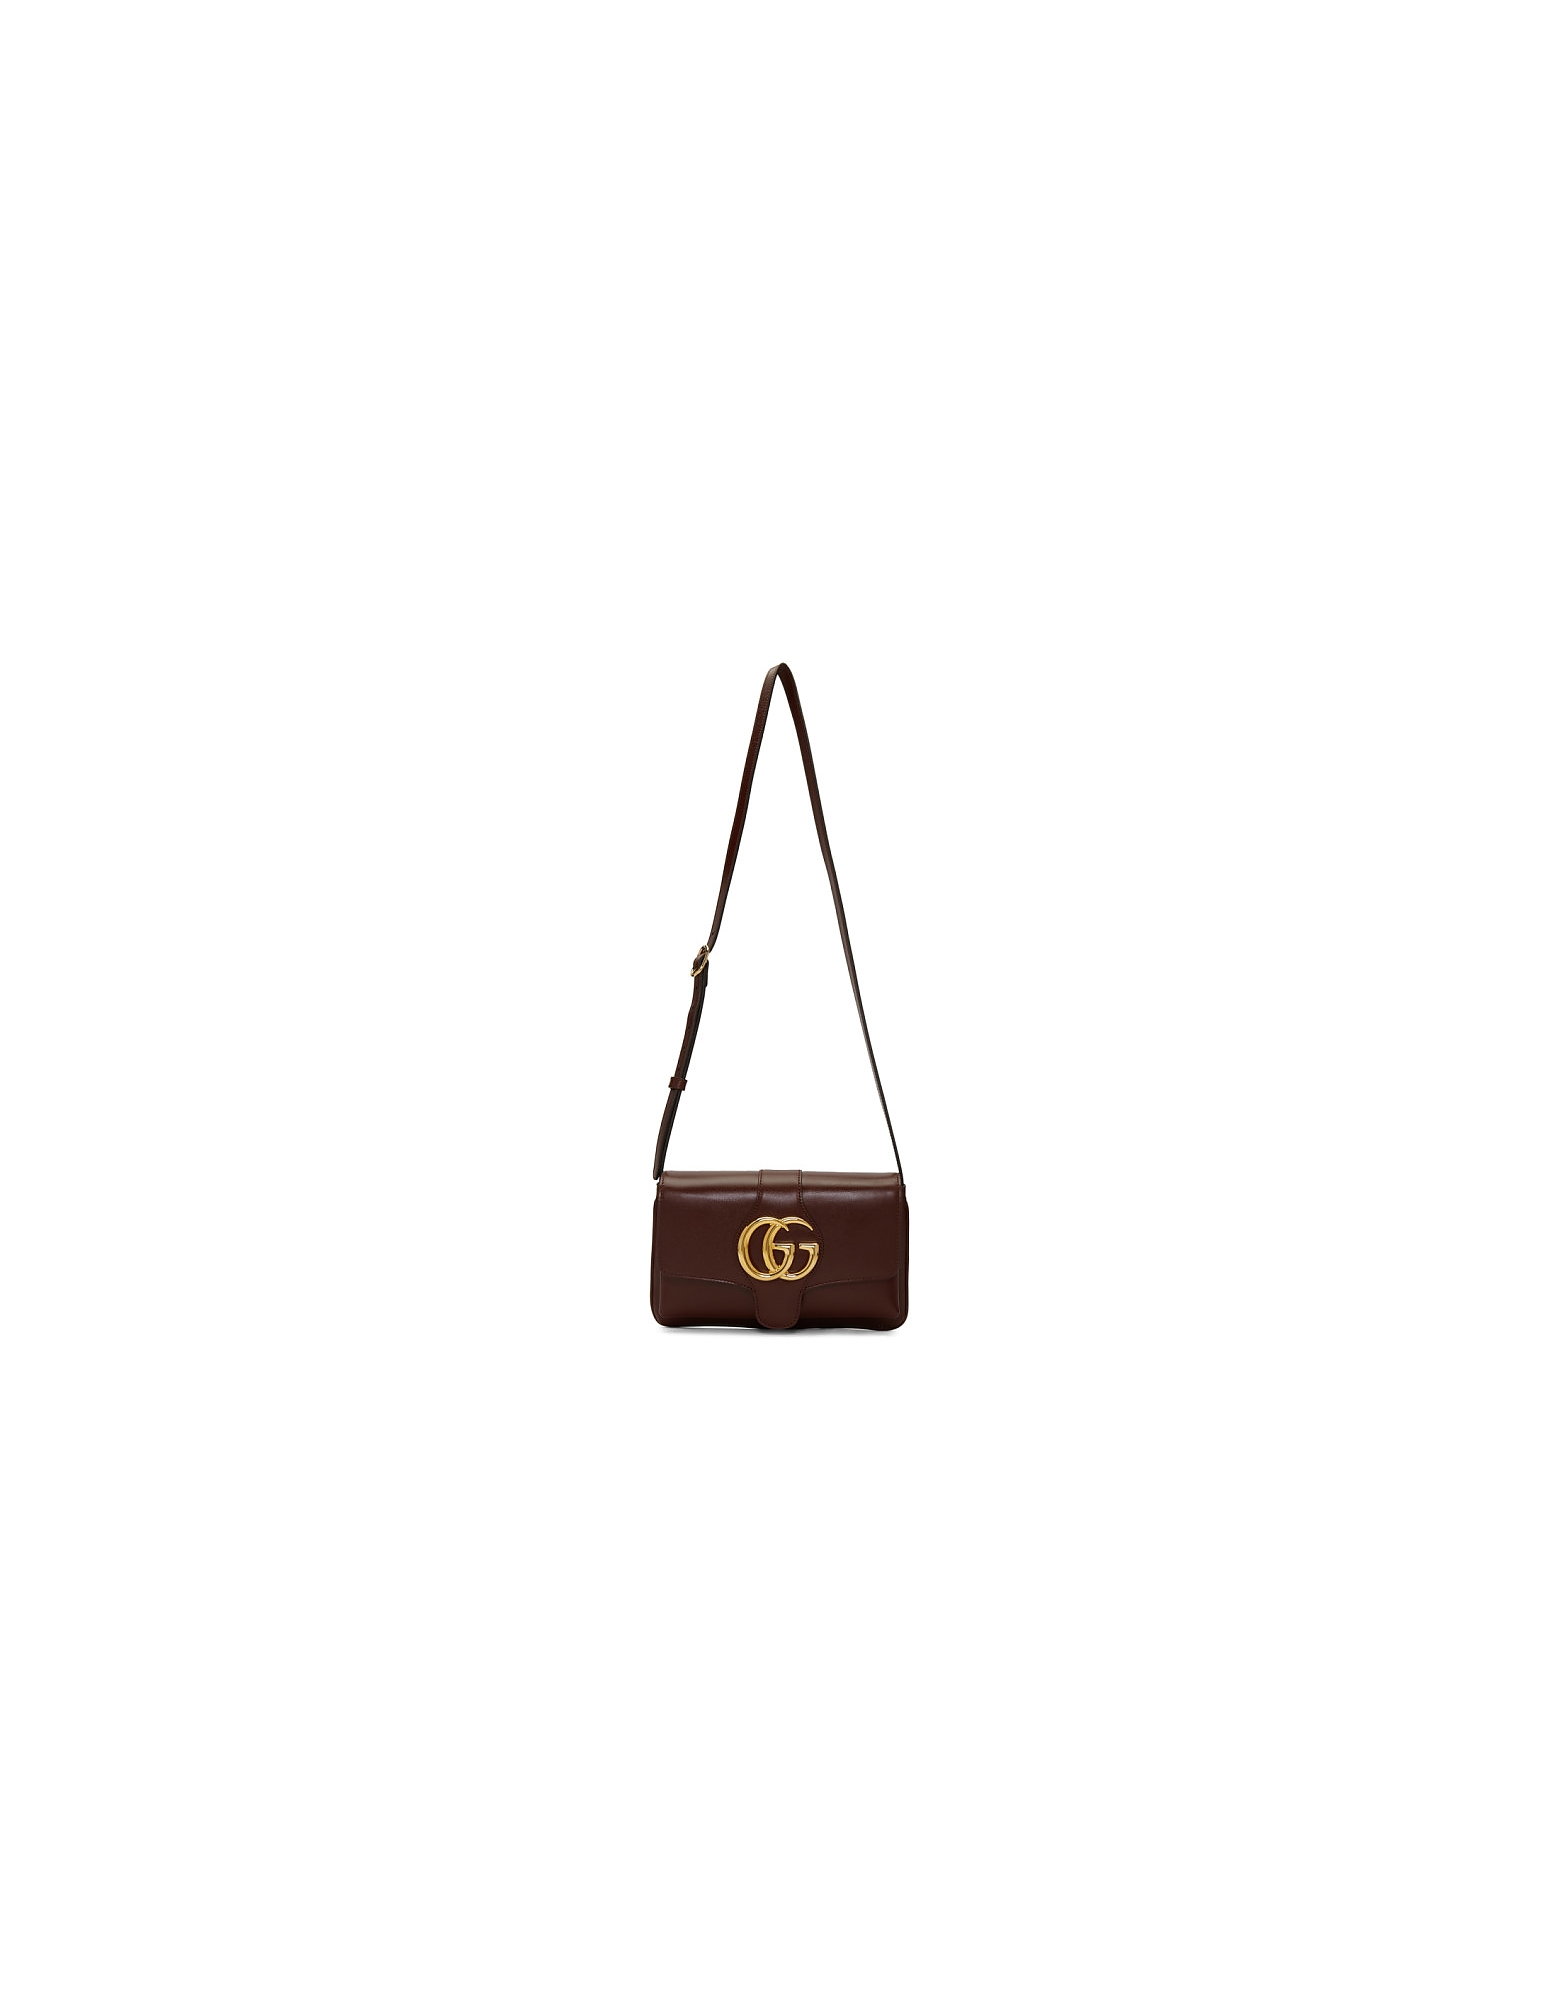 Gucci Designer Handbags, Burgundy Small Arli Shoulder Bag